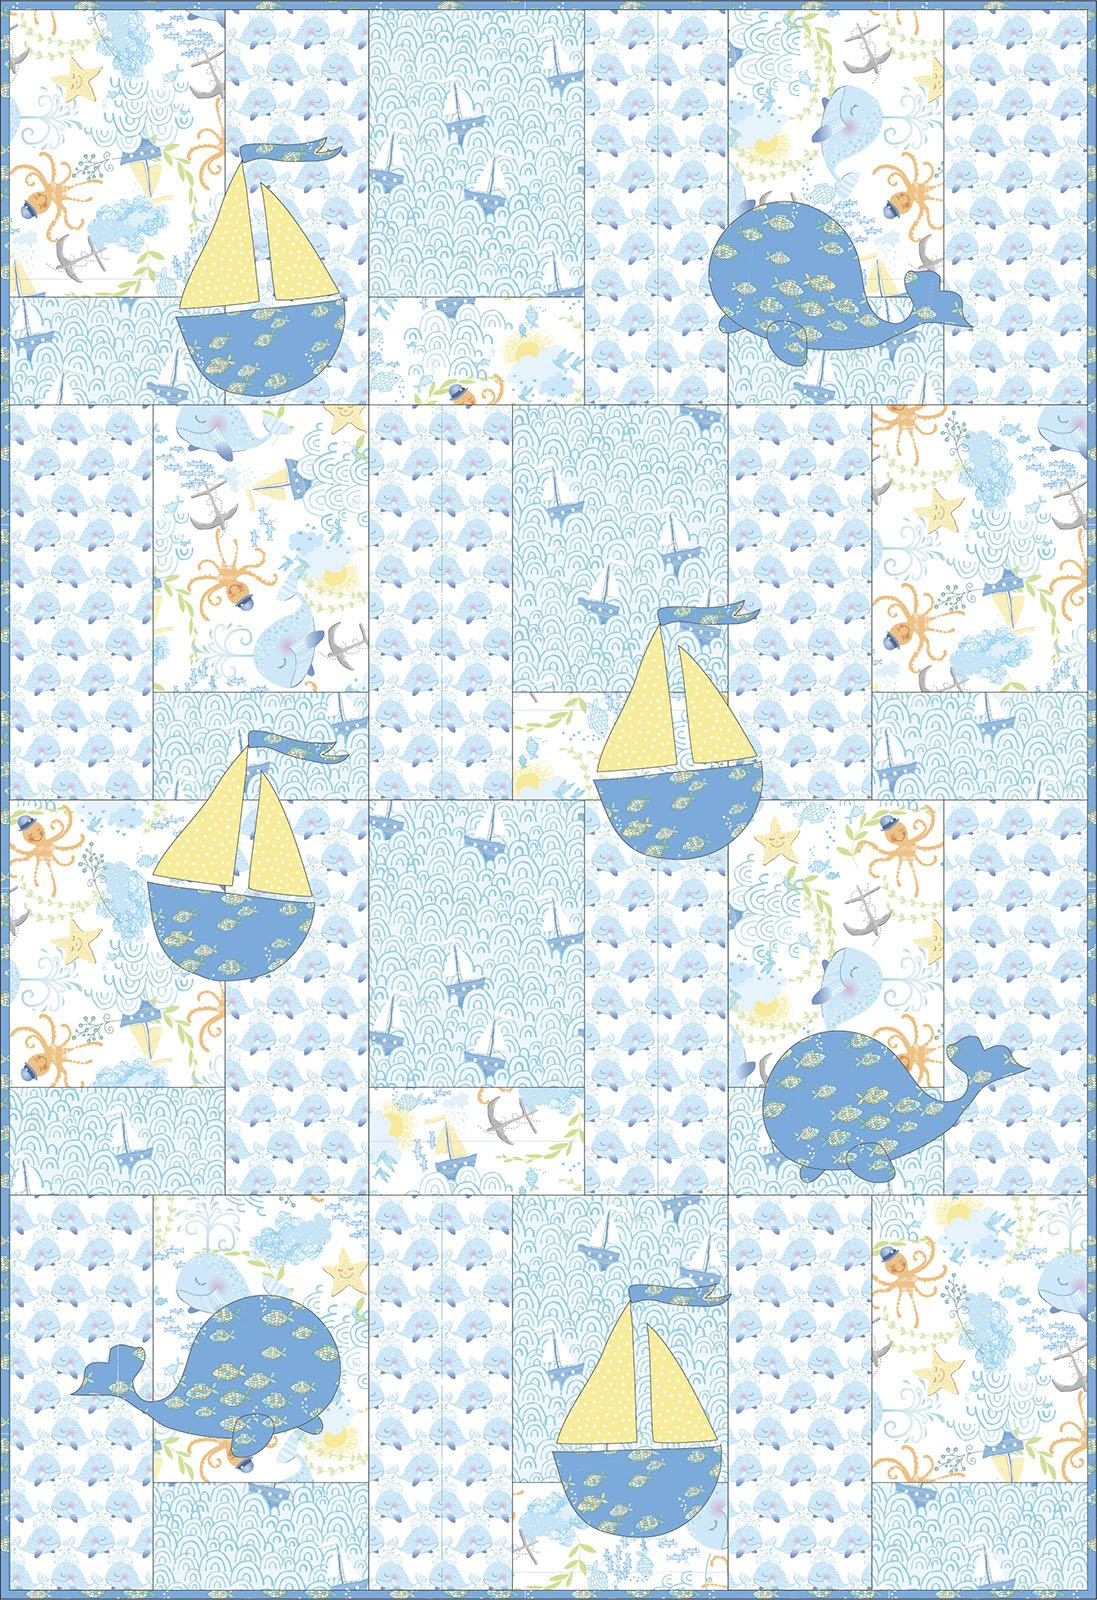 3 Wishes Fabric<br>Itty Bittys Whale Quilt